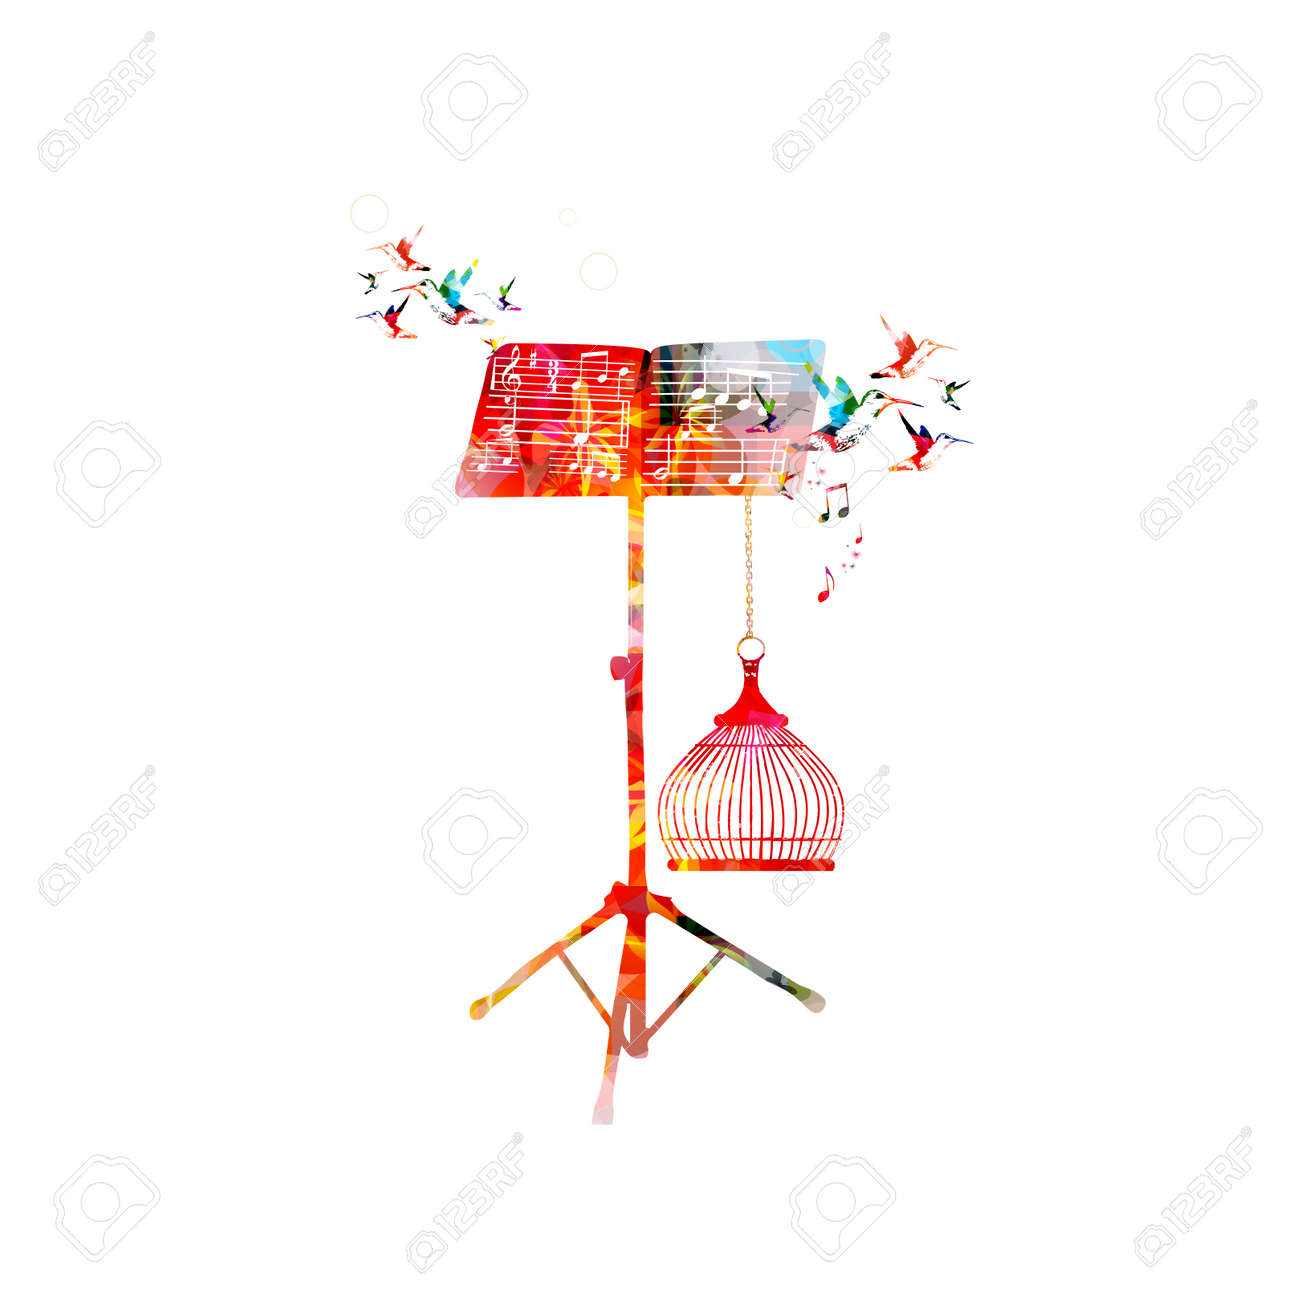 Creative Music Style Template Vector Illustration, Colorful Music ...